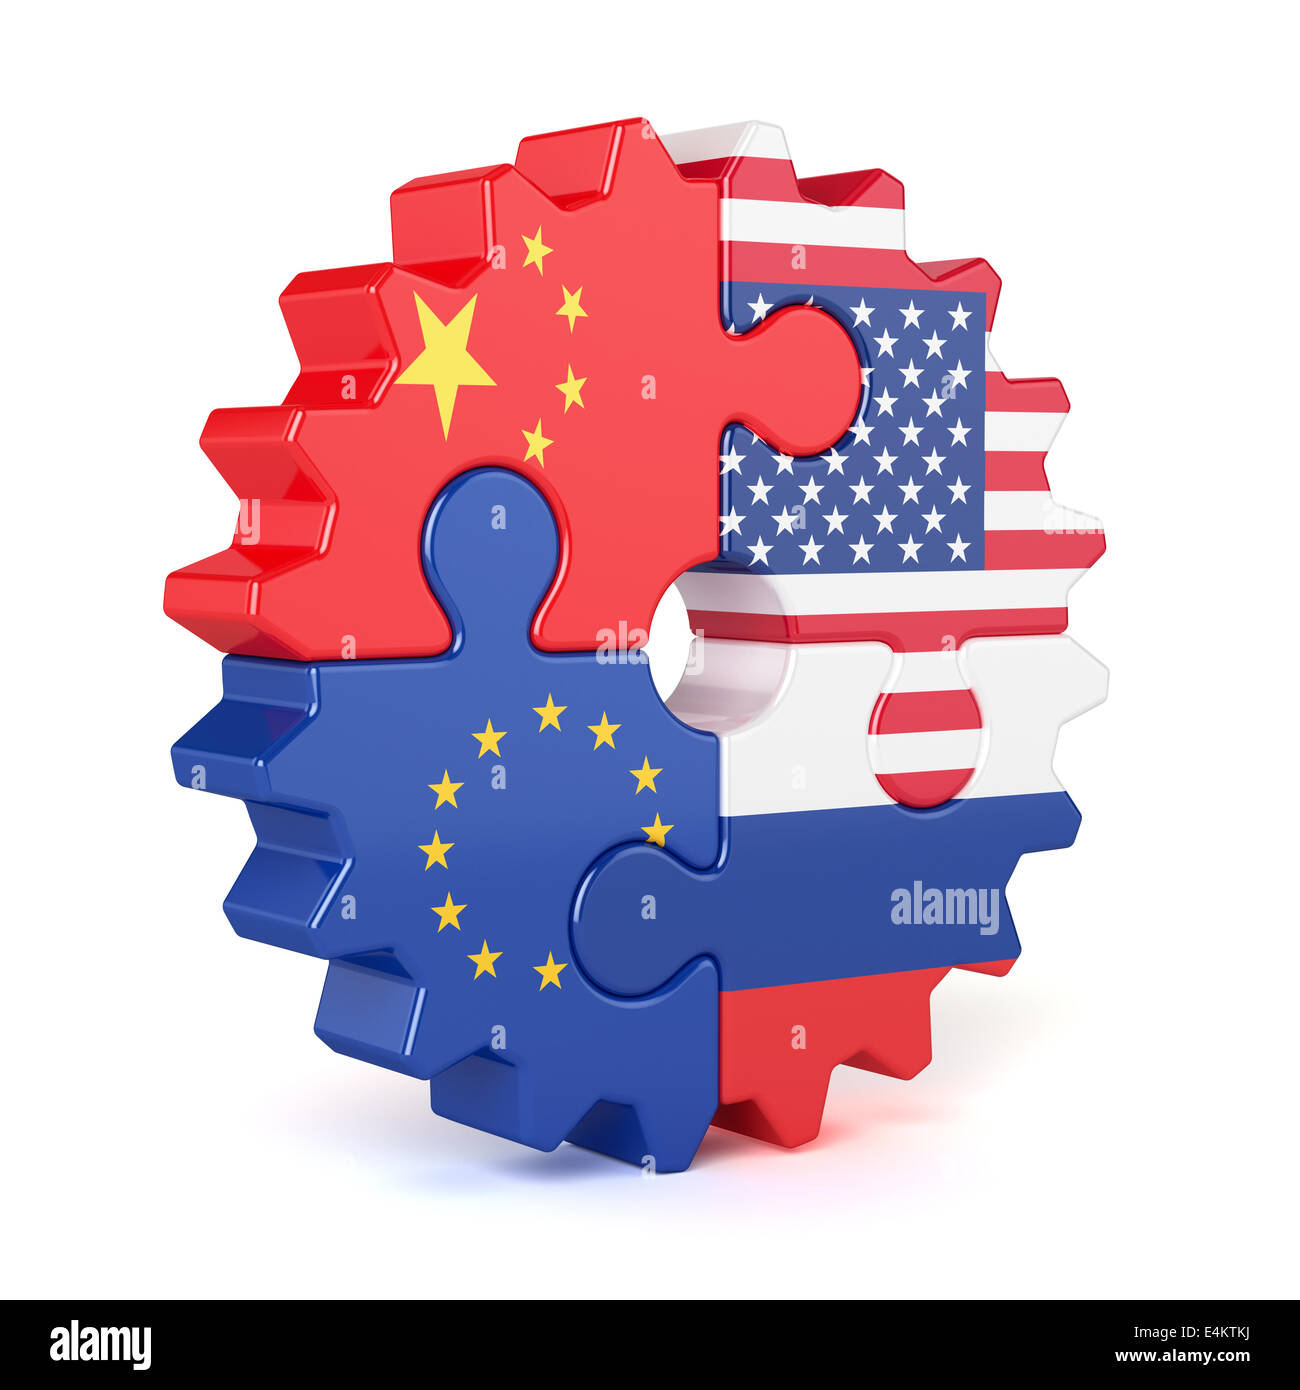 Puzzle gear of stacked flags European Union, USA, Russia, and China. Isolated on white background - Stock Image